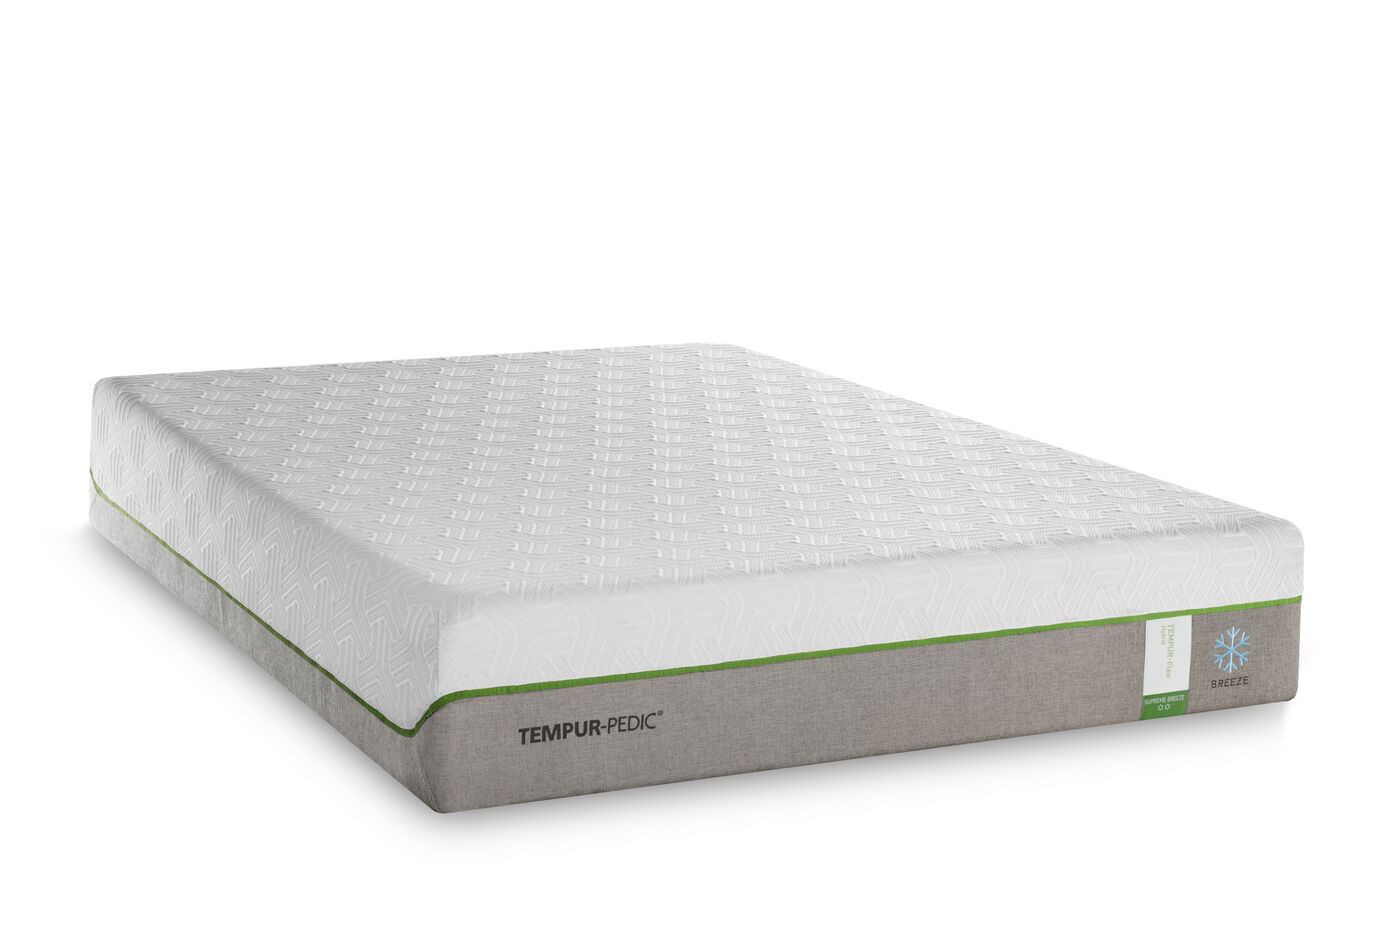 TEMPUR material responds to your body's temperature, weight and shape, creating Save With Coupons· Earn Reward Points· Free Shipping to StoresStyles: Home Decor, Bed & Bath, Curtains & Drapes, Quilts & Comforters.